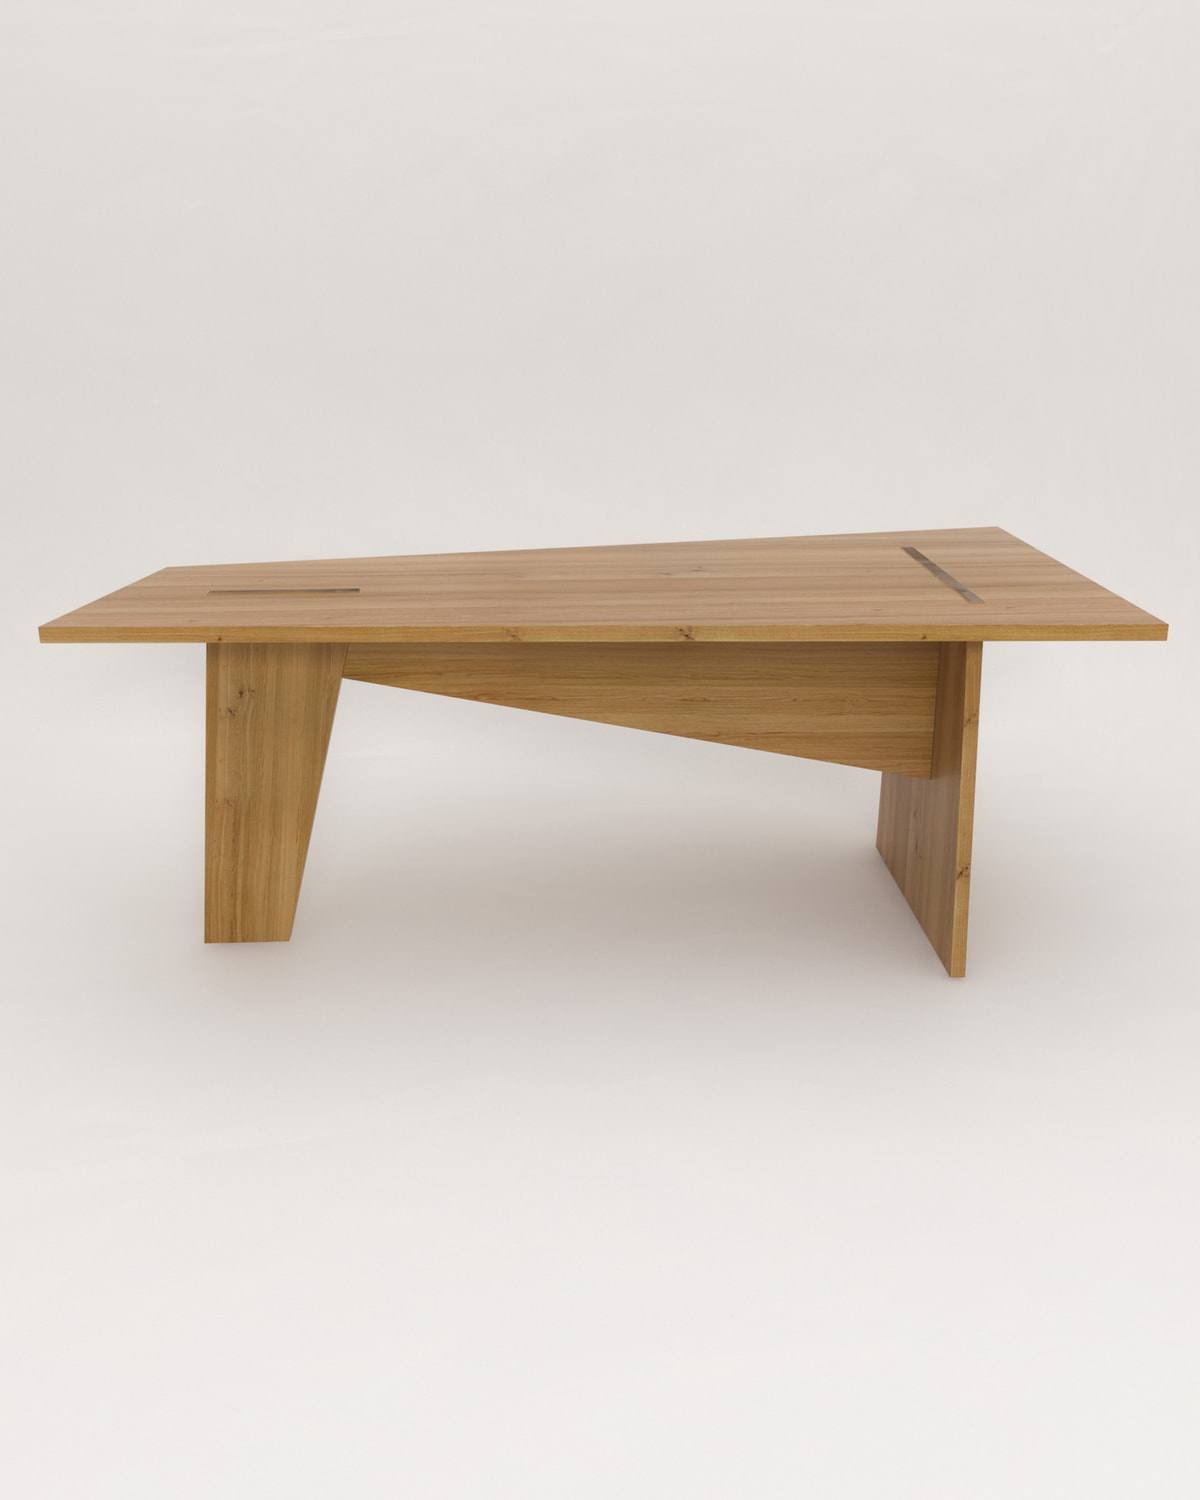 crooked_dining_table_03_1